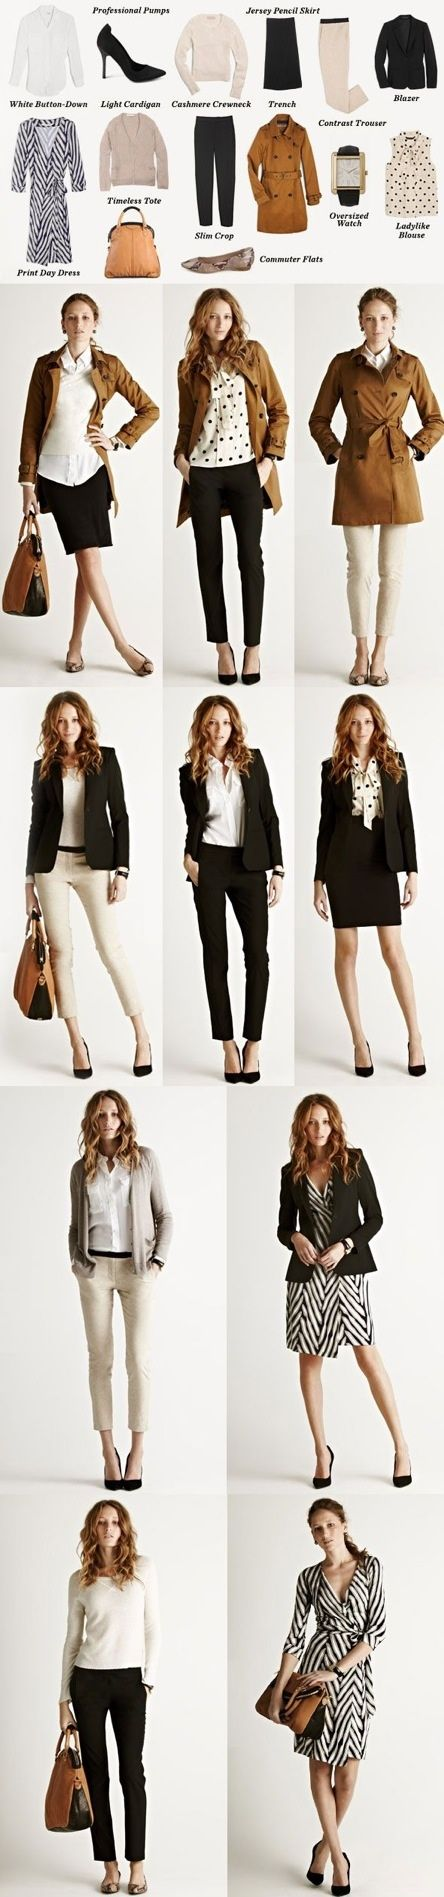 If you're more the corporate woman maybe this is something that makes you feel confident and beautiful to wear for your shoot?!